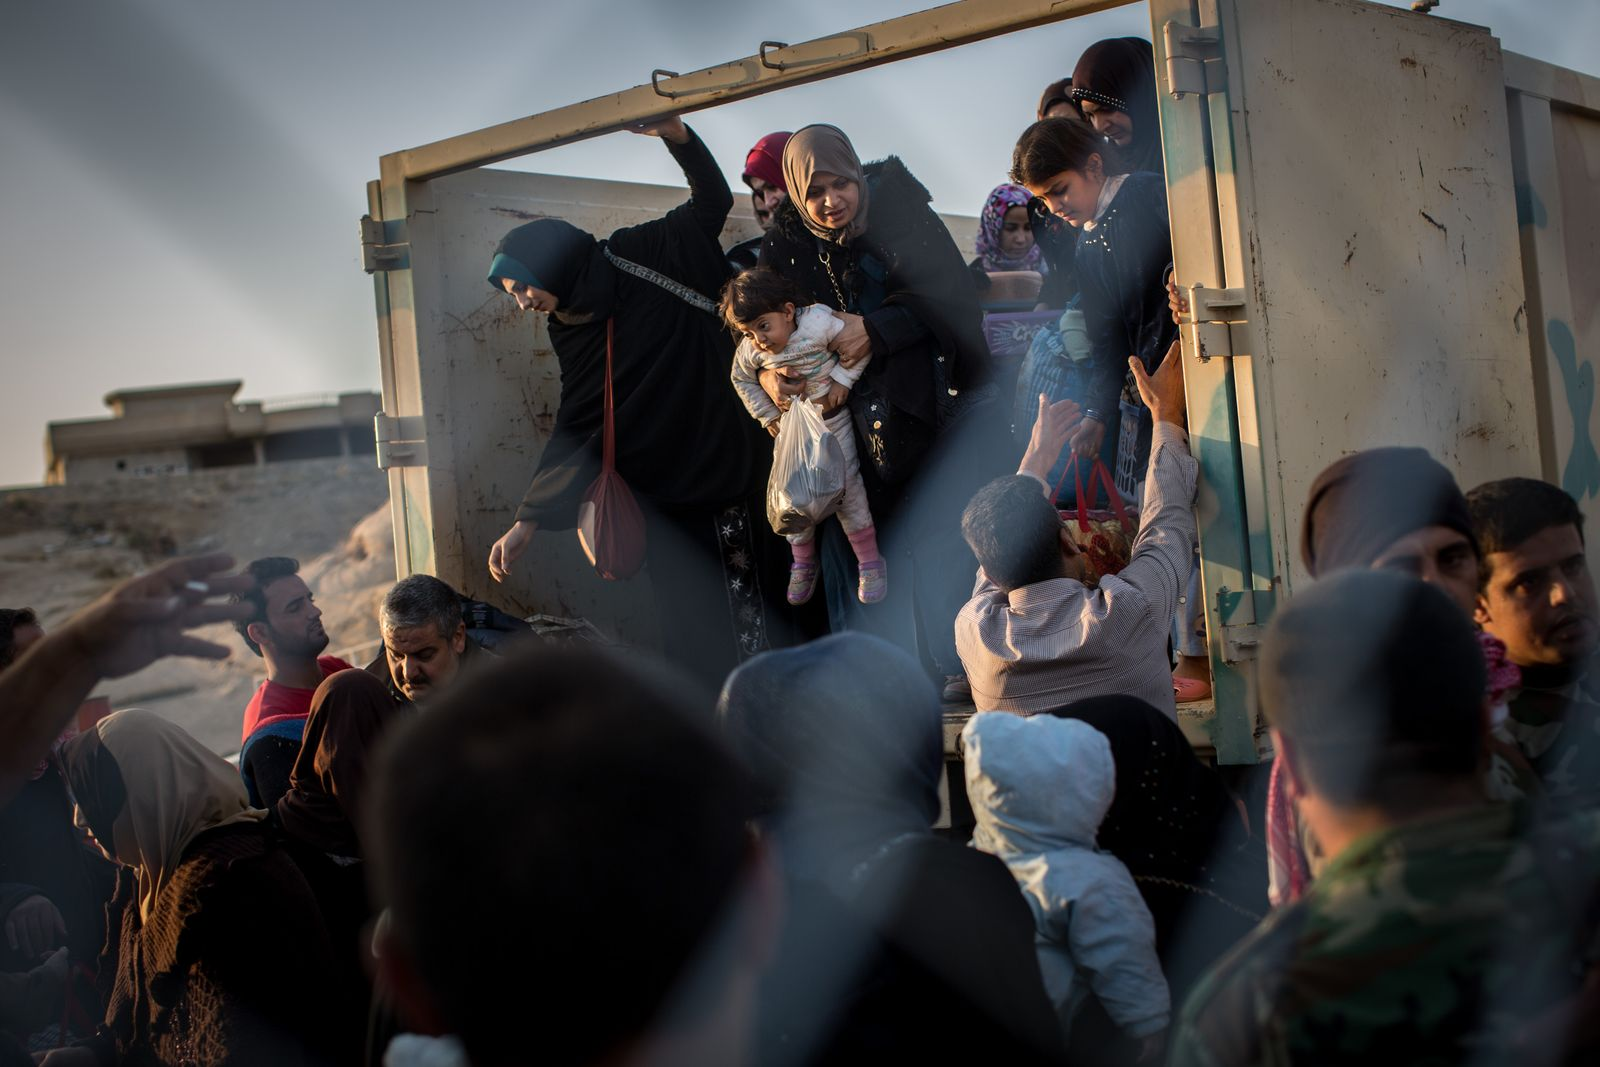 Fleeing Mosul Offensive, Civilians Pour Into Refugee Camps